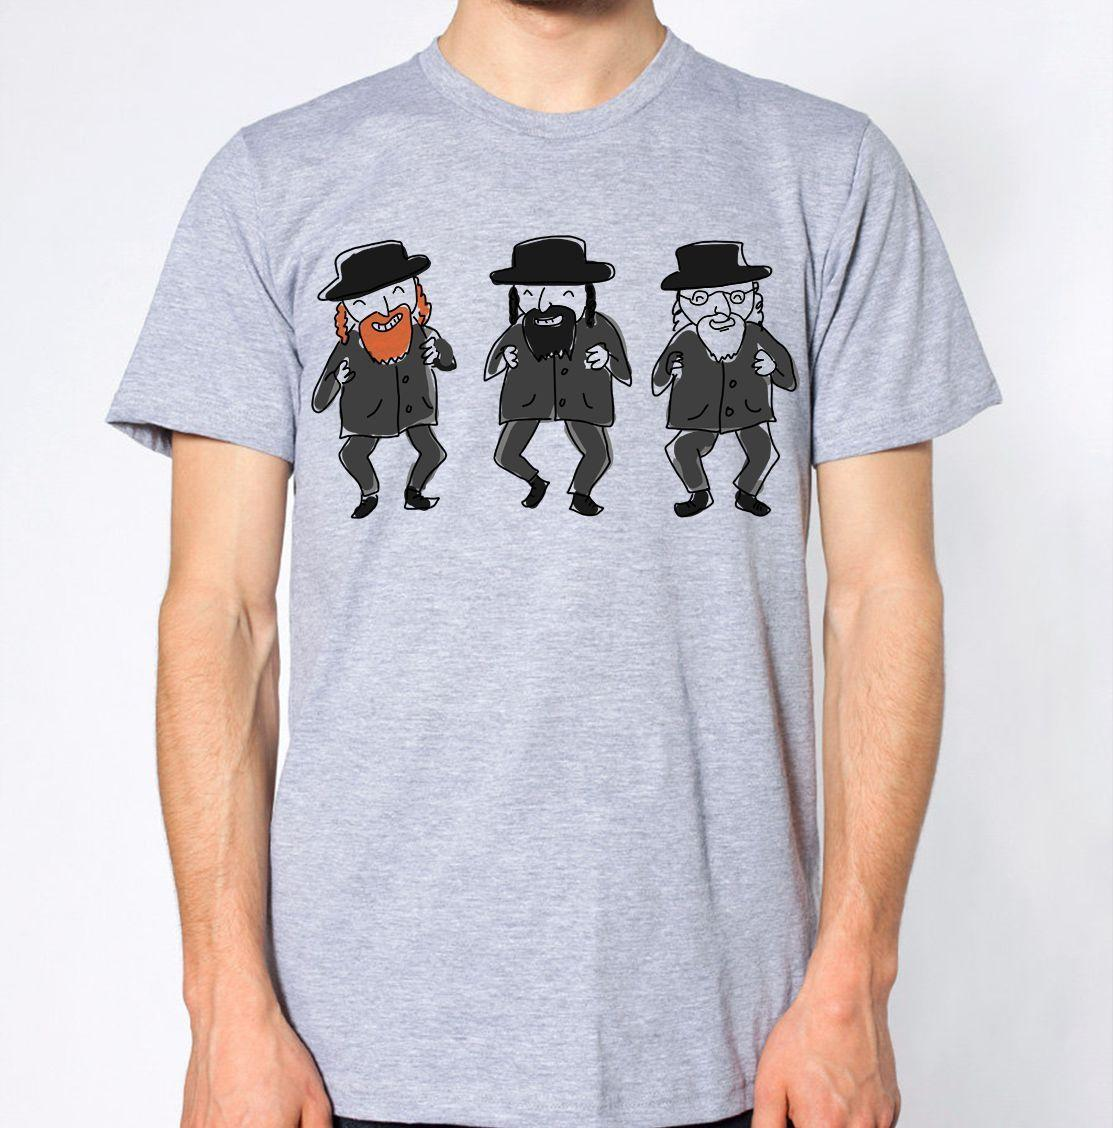 db4105c0a Jewish New T Shirt Jew Top Religion Faith God Peace Lover Cartoon Graphic  People Funny Unisex Casual Tee Make Tee Shirts T Shirts Print From ...